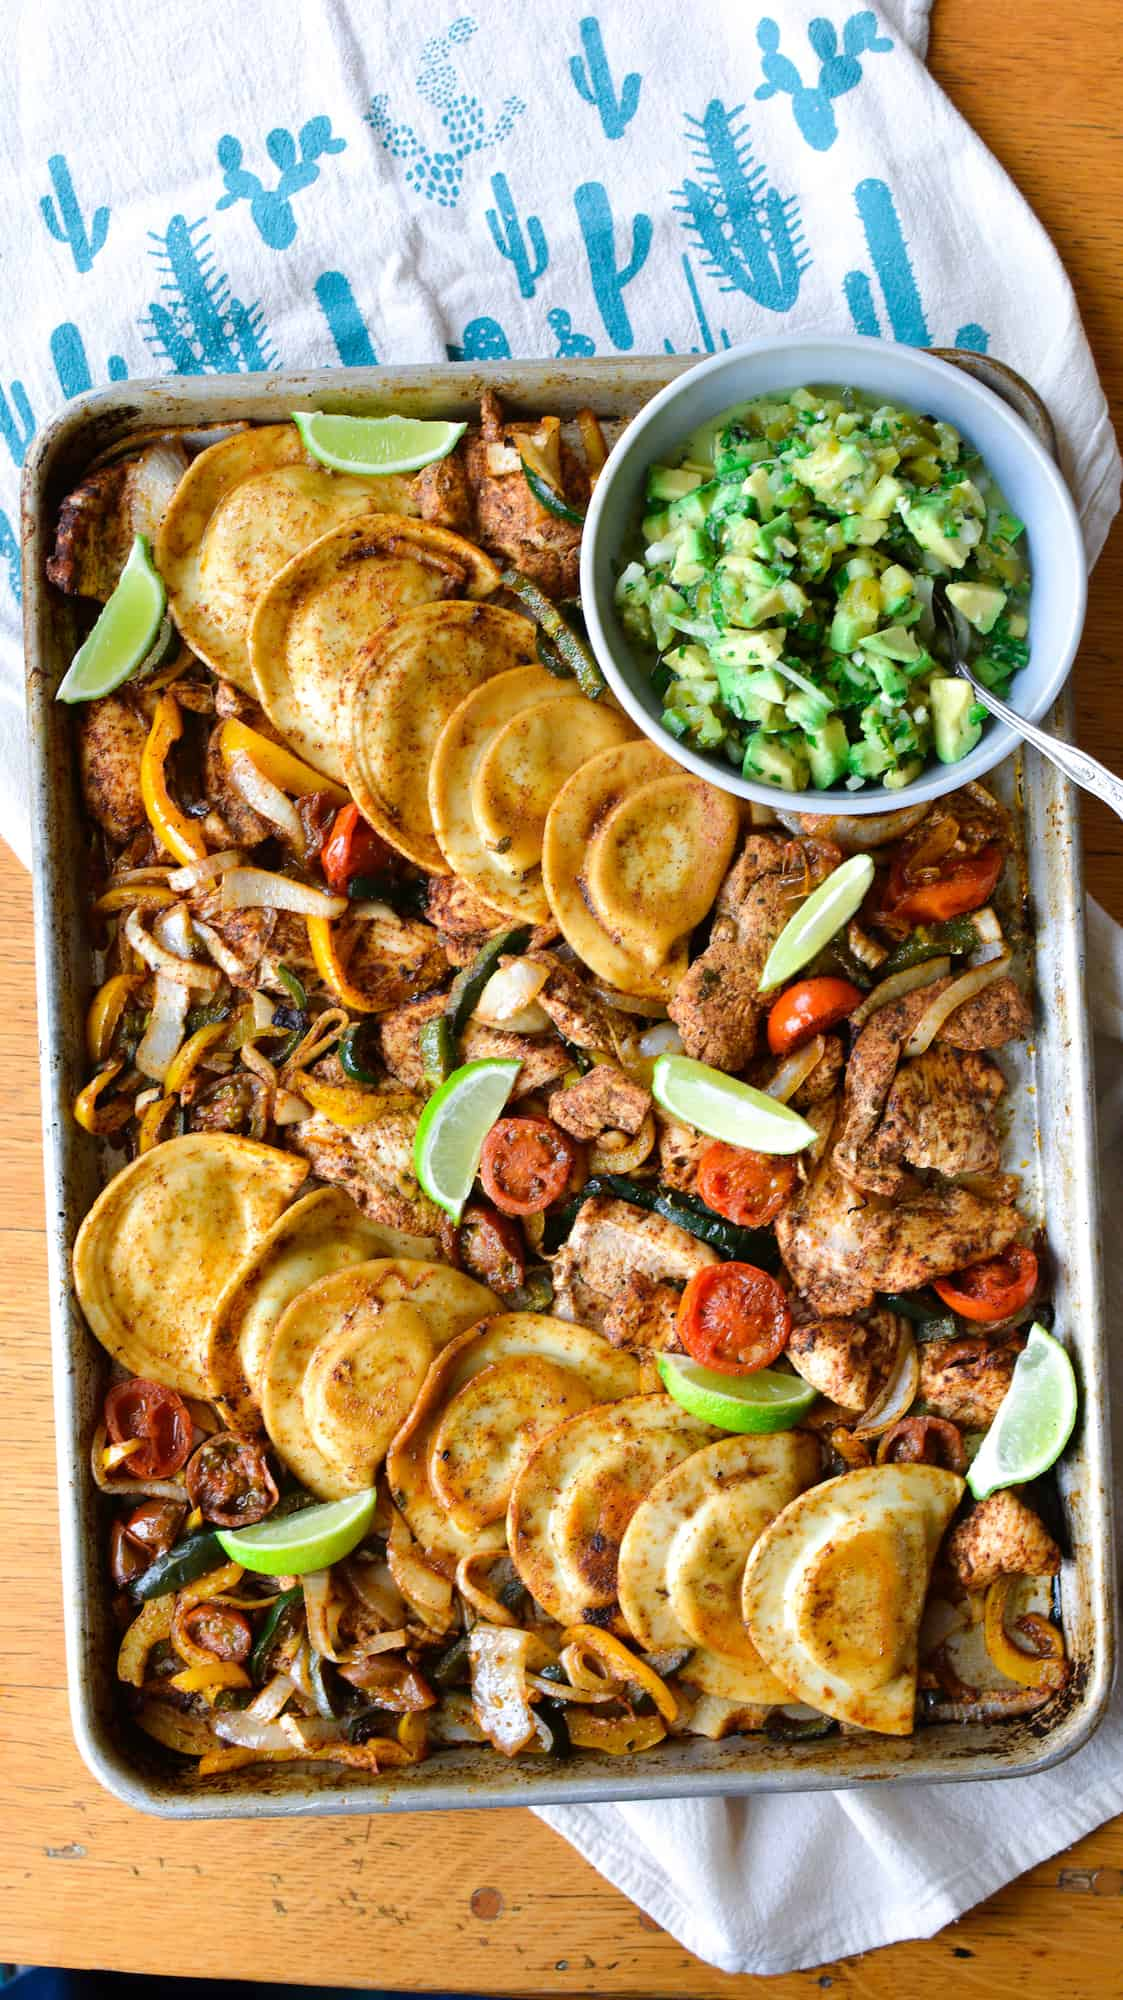 An overhead image of a sheet pan of chicken fajitas with Pierogies and a bowl of avocado salsa sitting on the sheet pan.